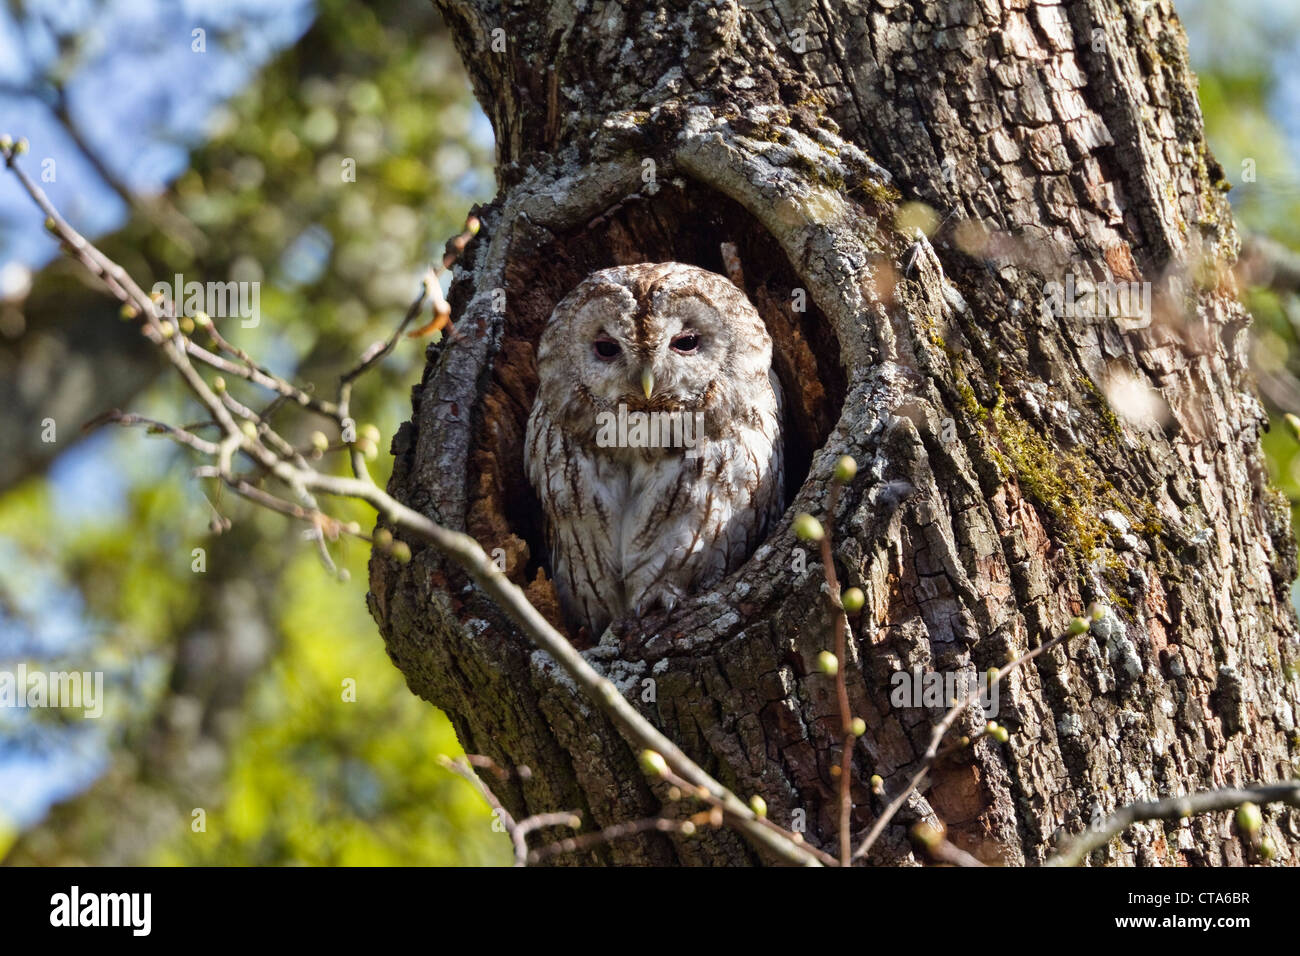 Brown Owl (Strix aluco) in a tree trunk, Bavaria, Germany - Stock Image